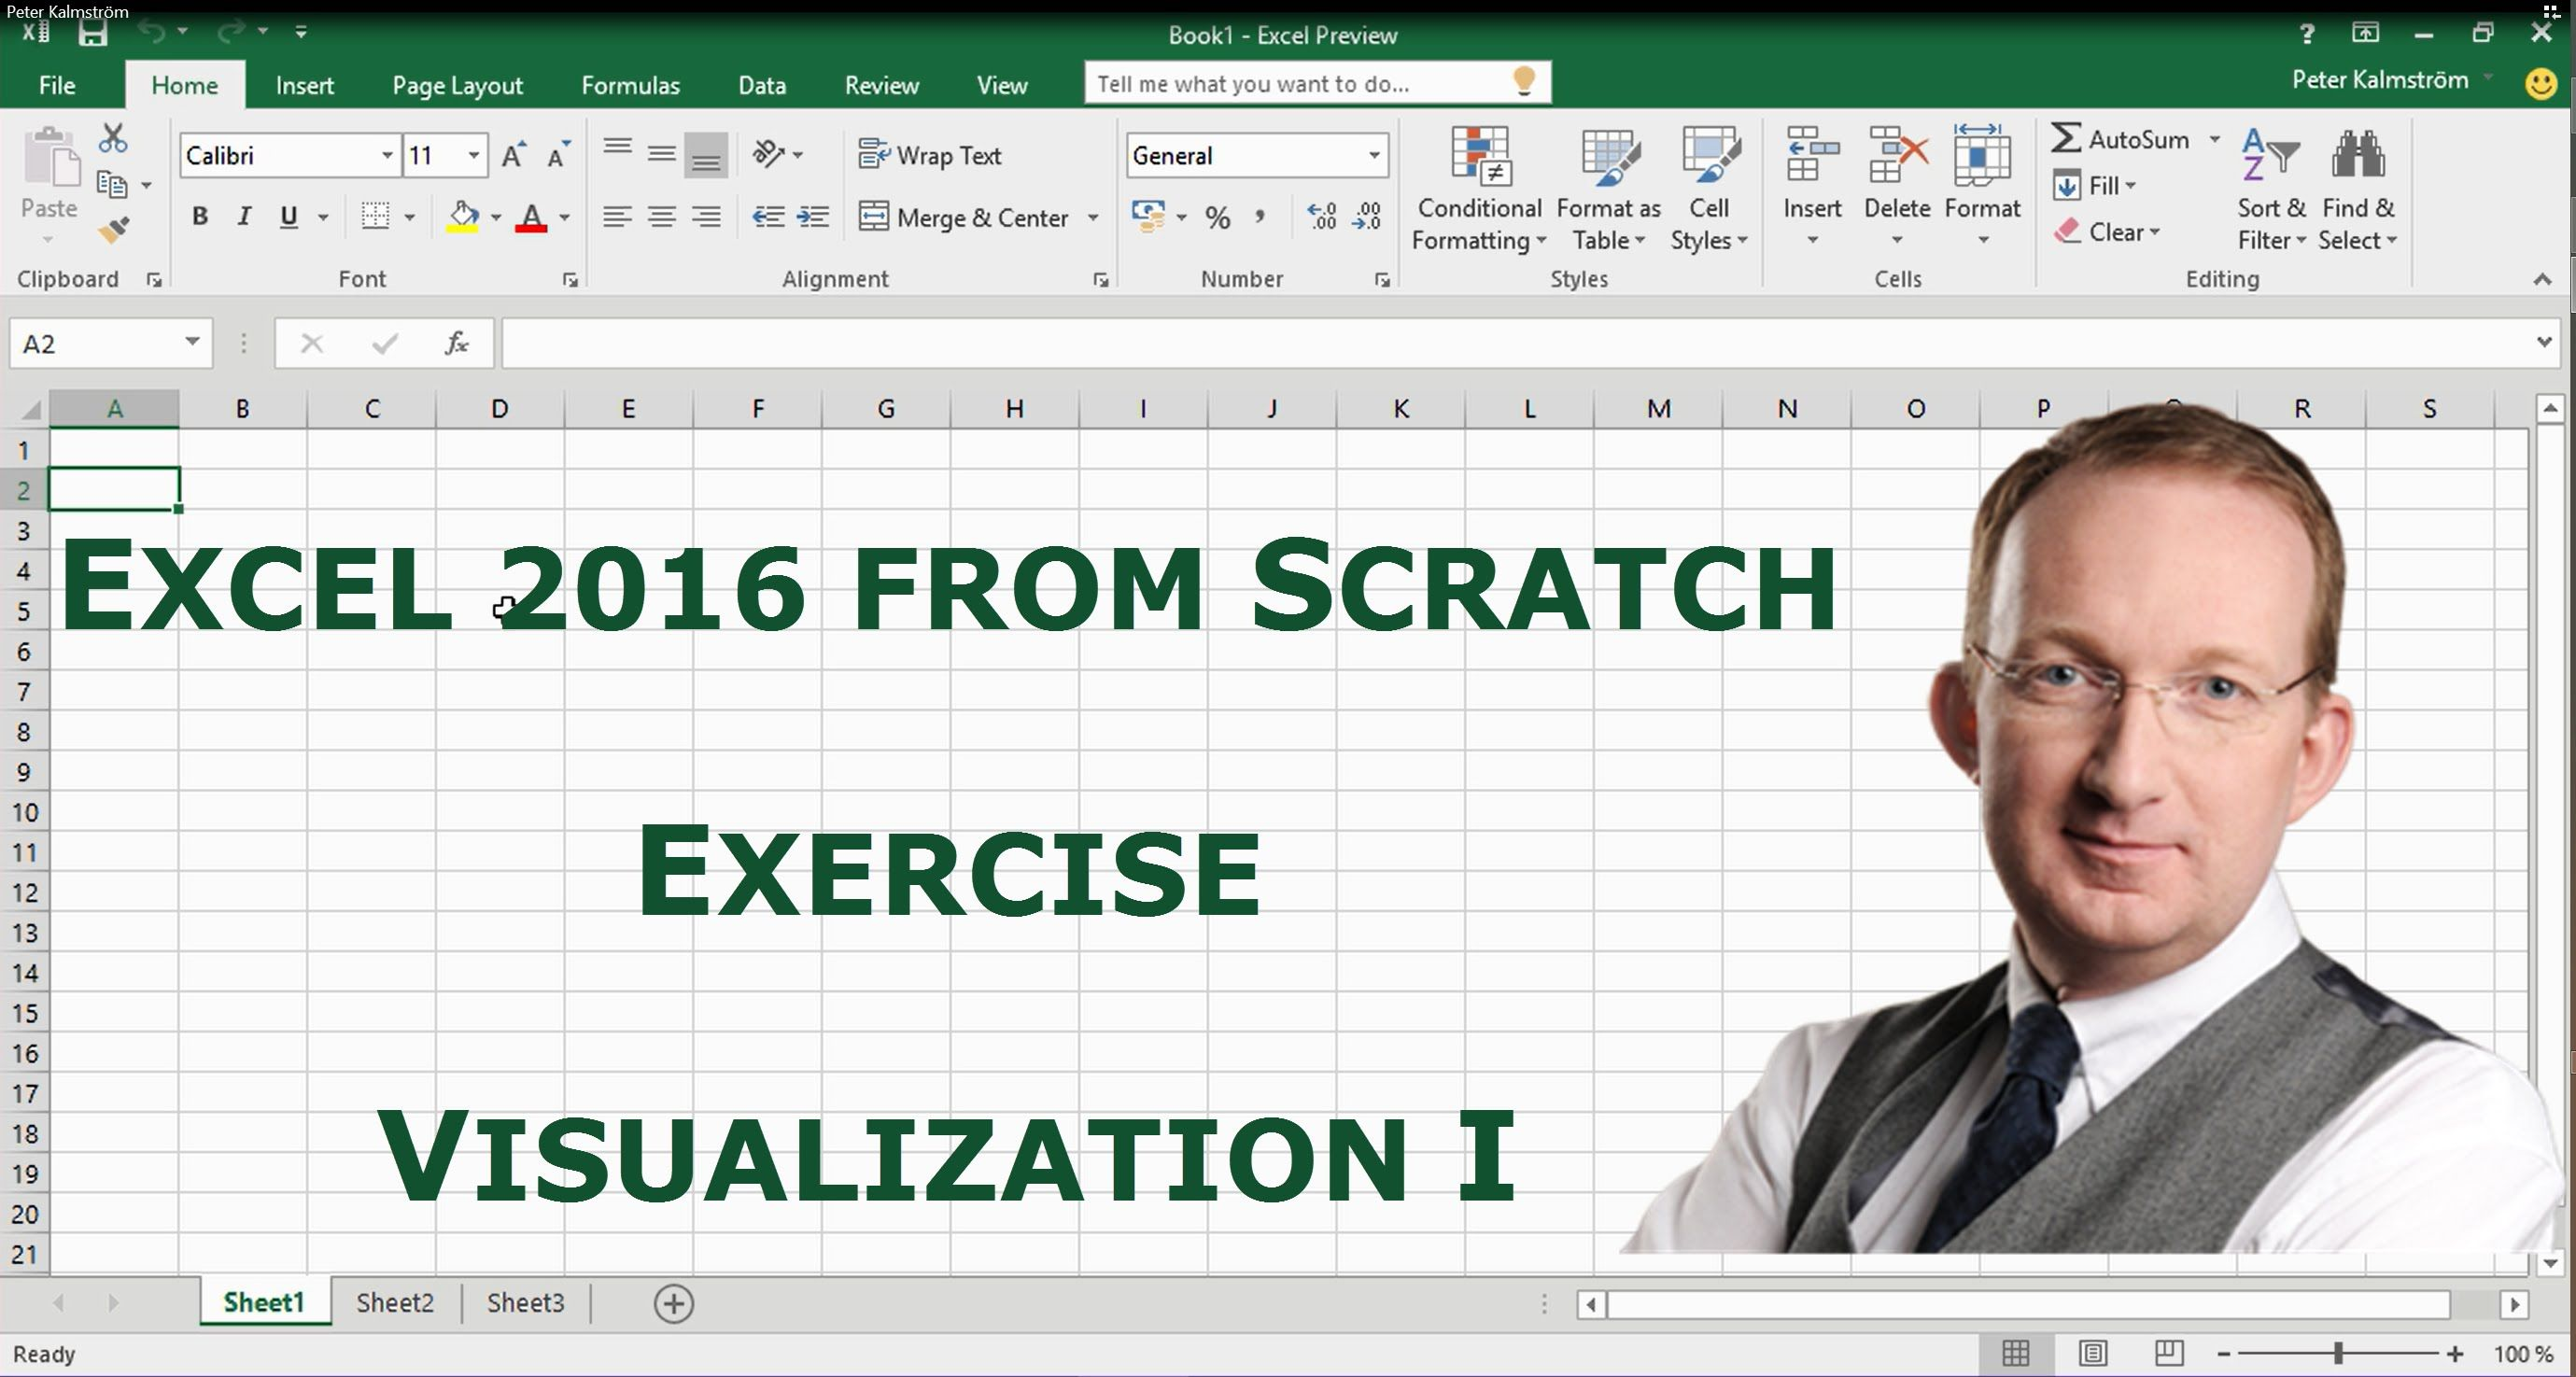 *Excel 2016 from Scratch. Exercise - Visualization I*  Excel 2016 course, also suitable for earlier versions. In this demo Peter Kalmstrom gives tips on pivot table views. Also refer to http://www.kalmstrom.com/Tips/Excel-2..., where you can download the file Peter is working with and try for yourself!